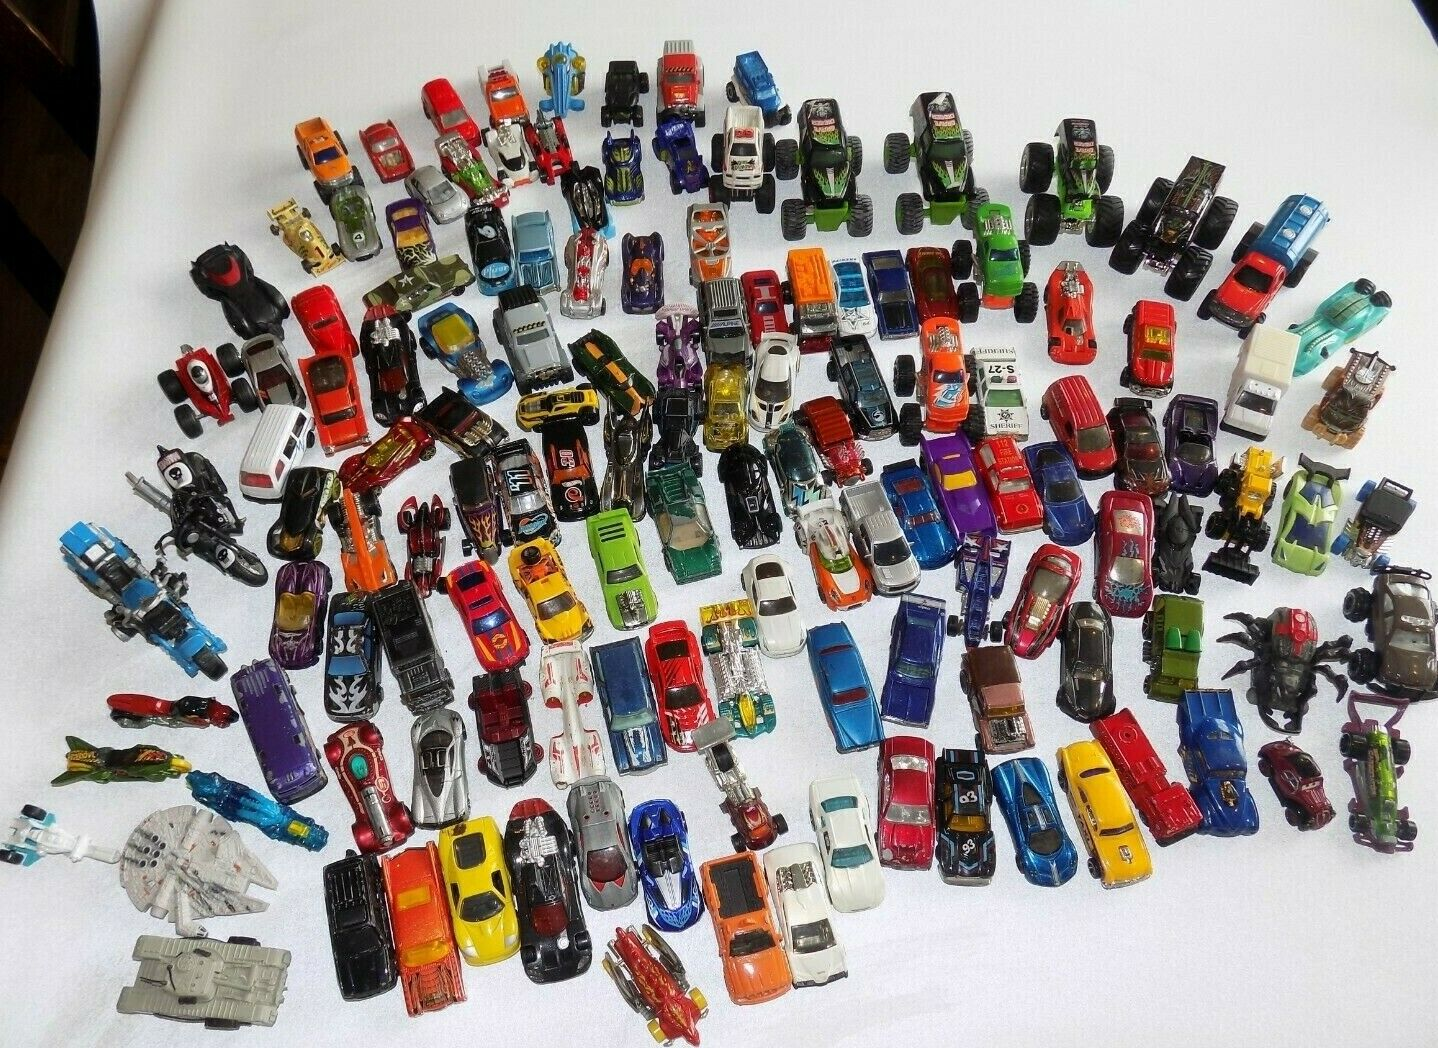 Hot Wheels Cars Lot of 135 Toy Cars